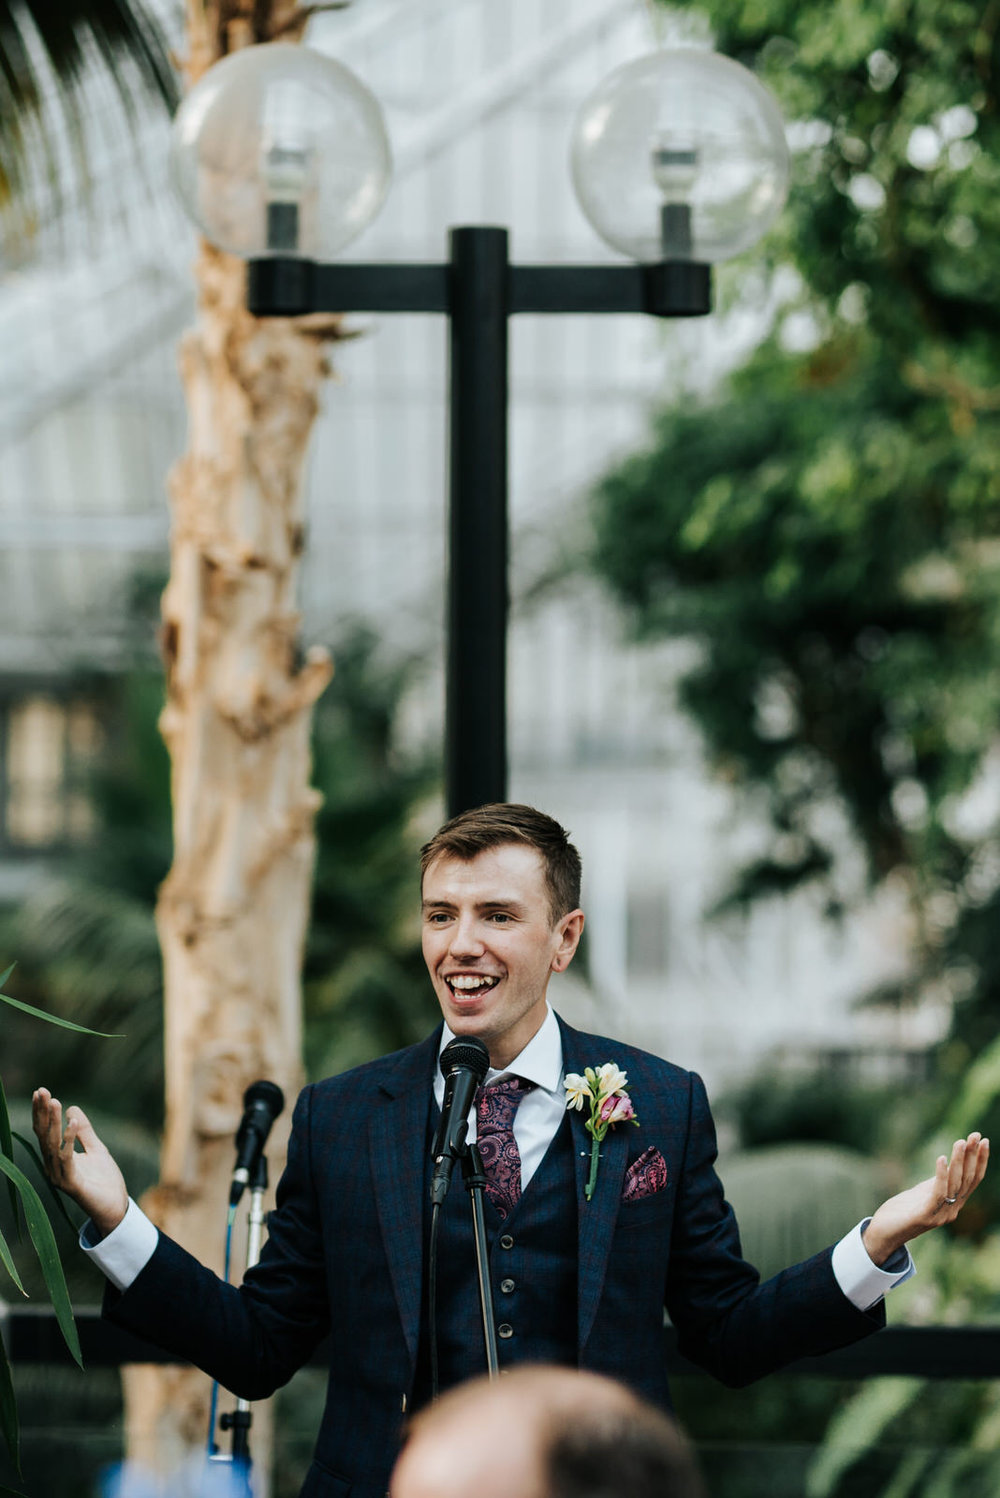 Groom looks happy and amused as he starts delivering his wedding